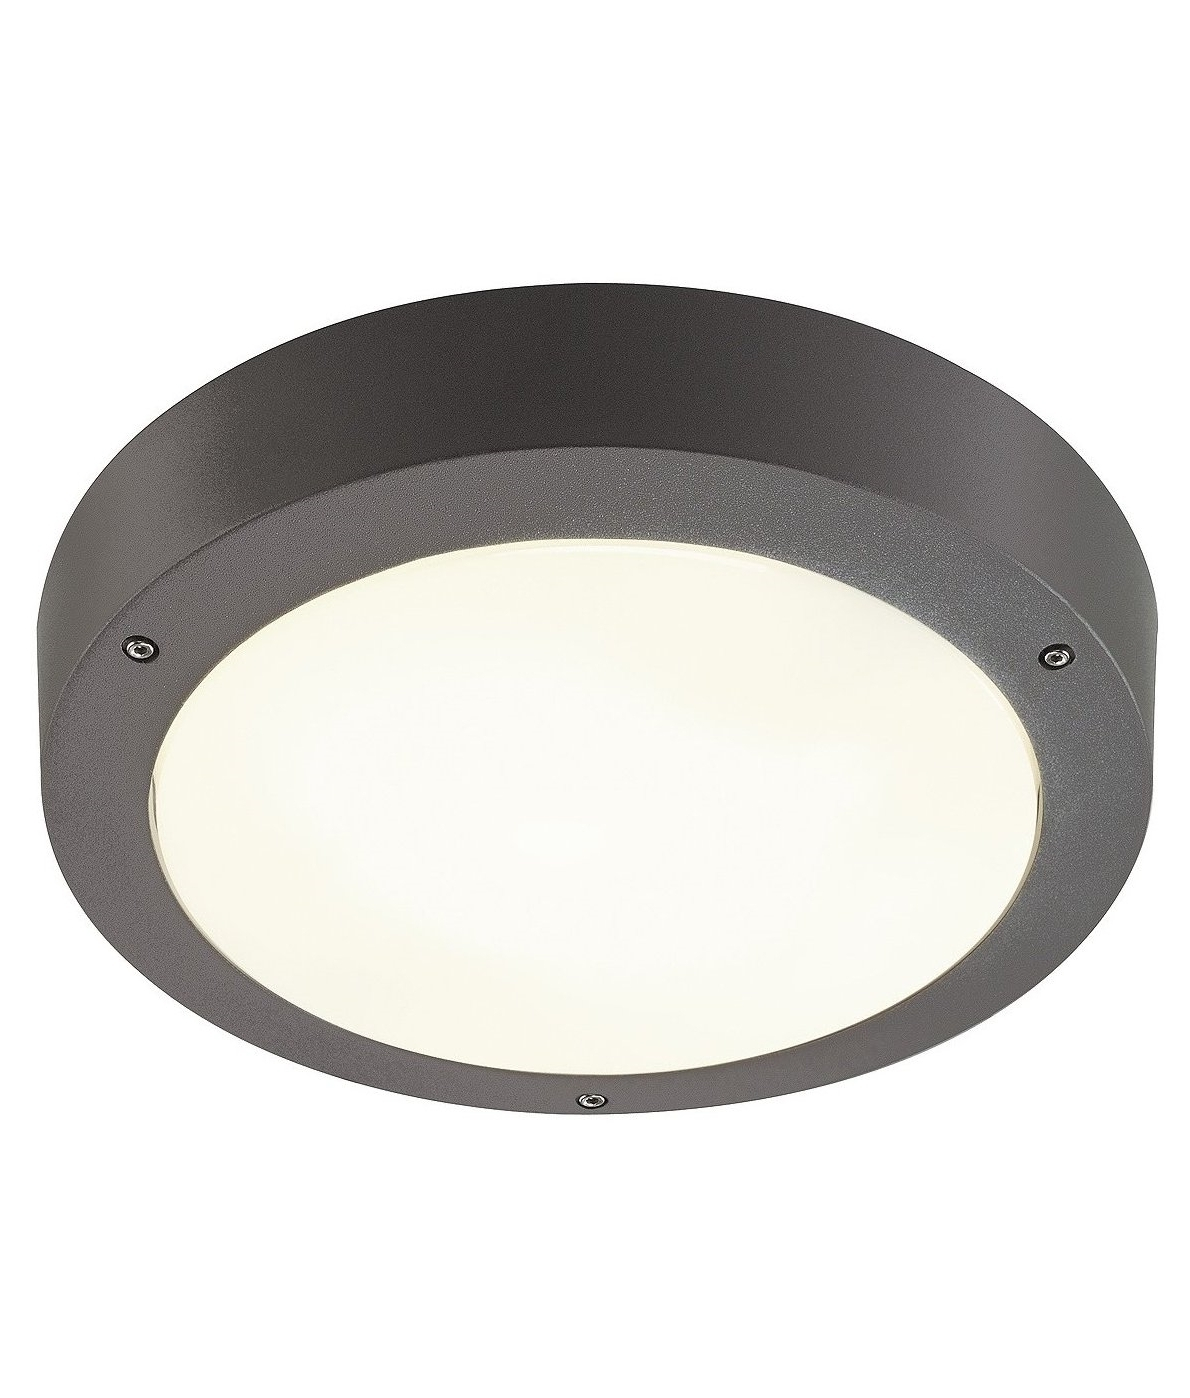 Outdoor Ceiling Sensor Lights Intended For Current Outdoor Ceiling Sensor Light – Outdoor Designs (View 11 of 20)